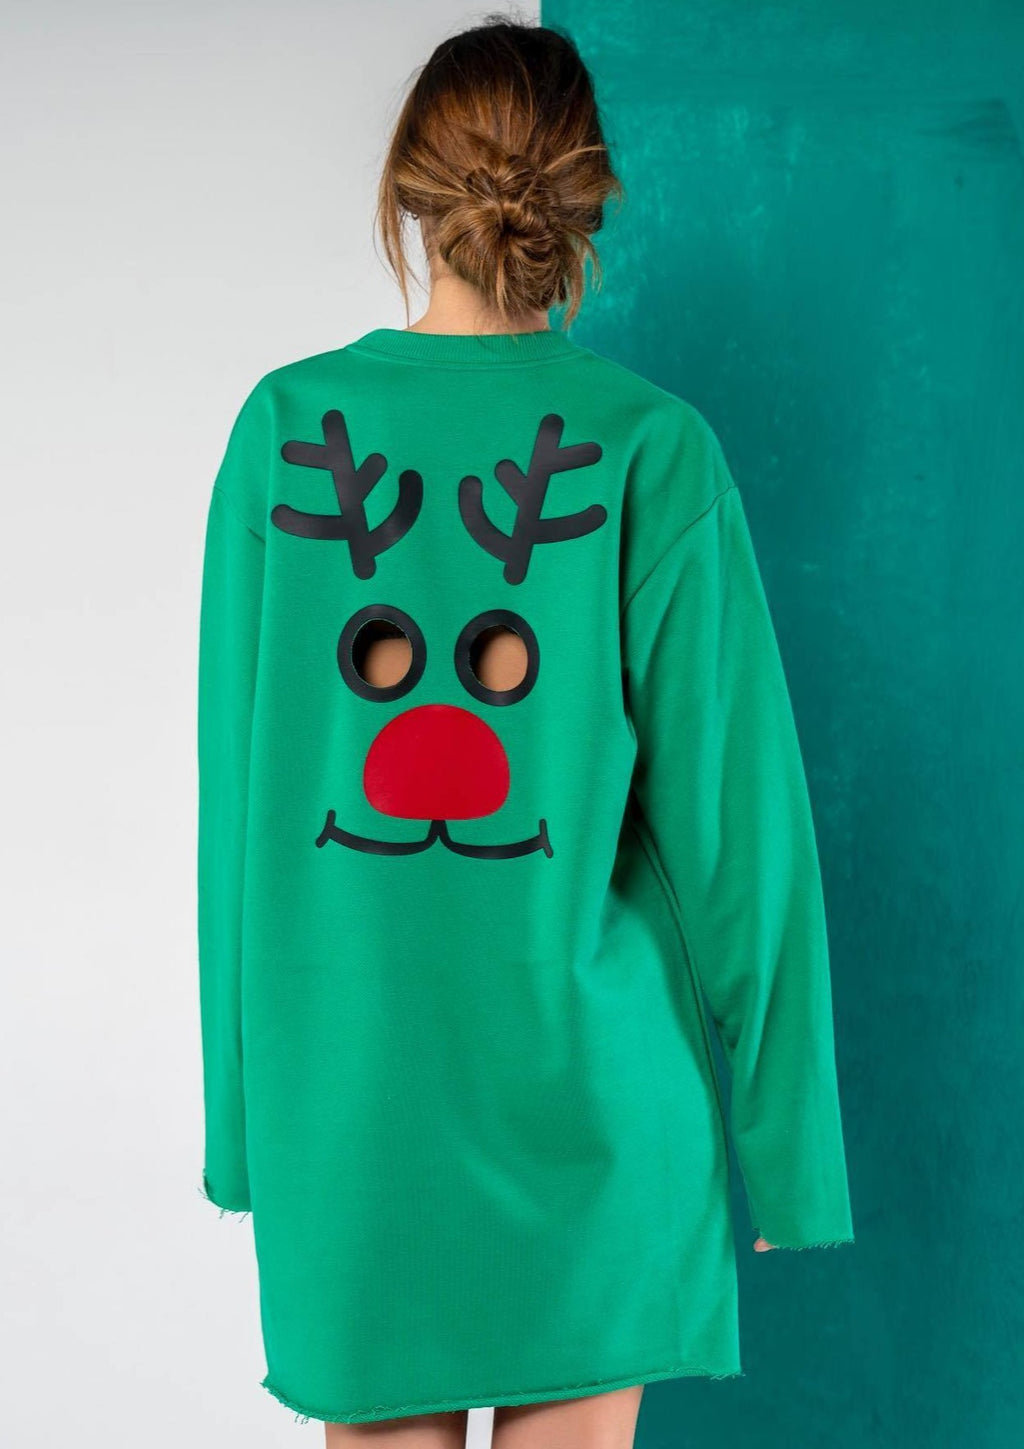 Wholly Wear Reindeer Sweater Dress